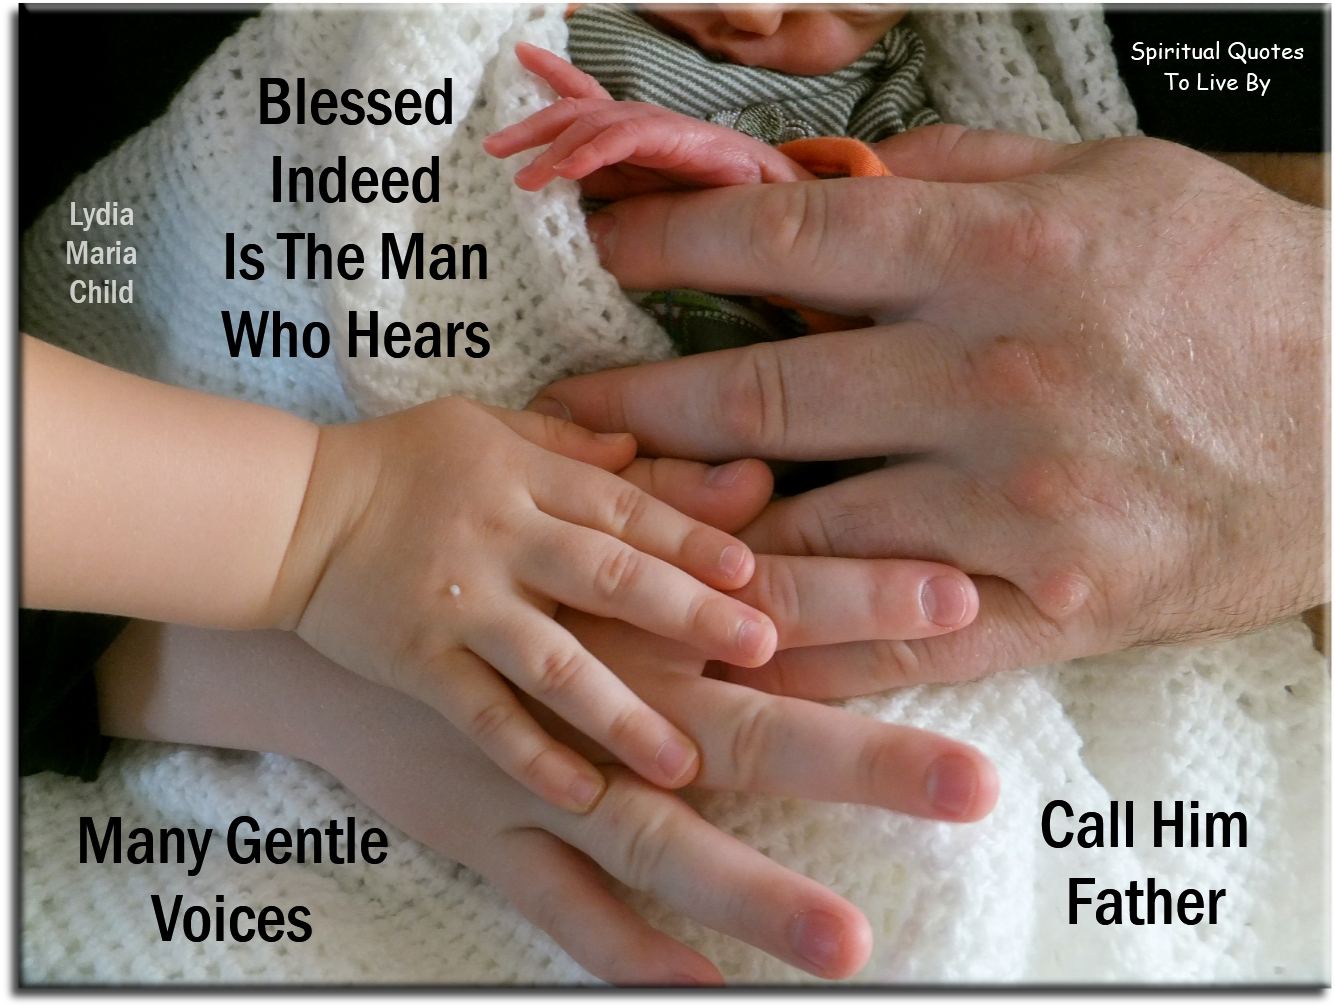 Blessed indeed is the man who hears many gentle voices call him Father - Lydia Maria Child - Spiritual Quotes To Live By